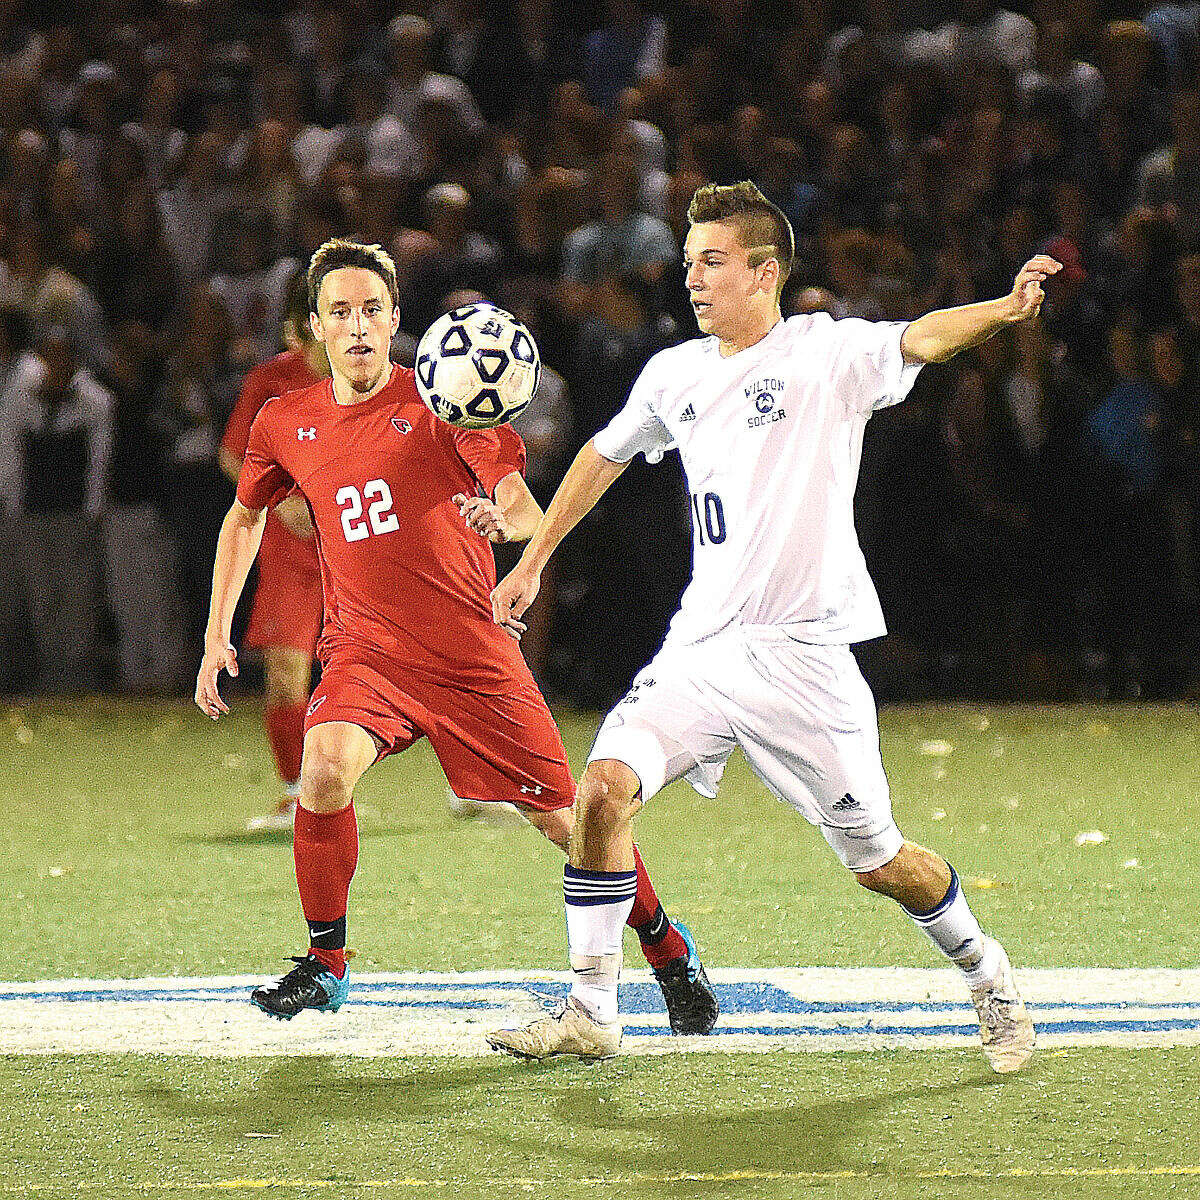 Hour photo/John Nash - Wilton's Jack Brandt, right, plays the ball past a Greenwich defender during Thursday's FCIAC boys soccer quarterfinal at Kristine Lilly Field in Wilton.